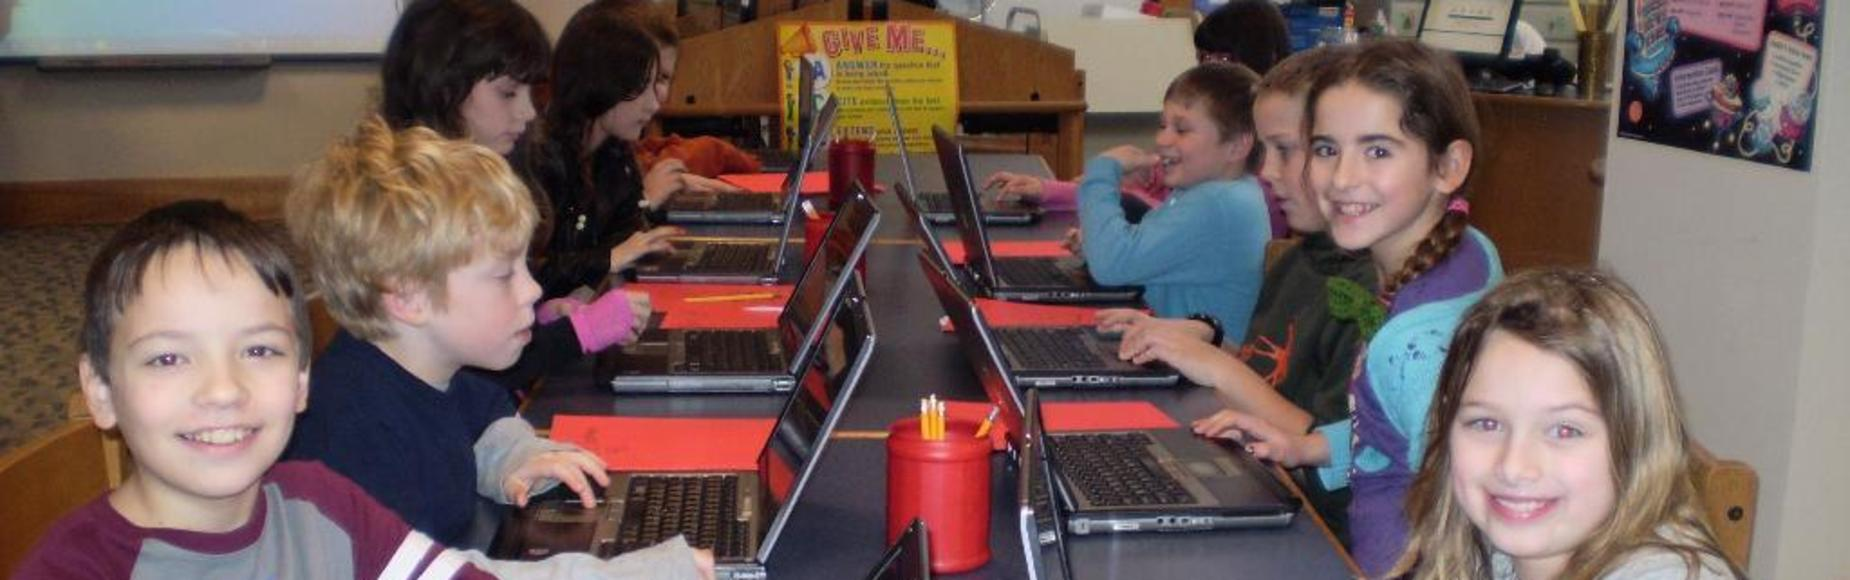 Kids on Computers Picture